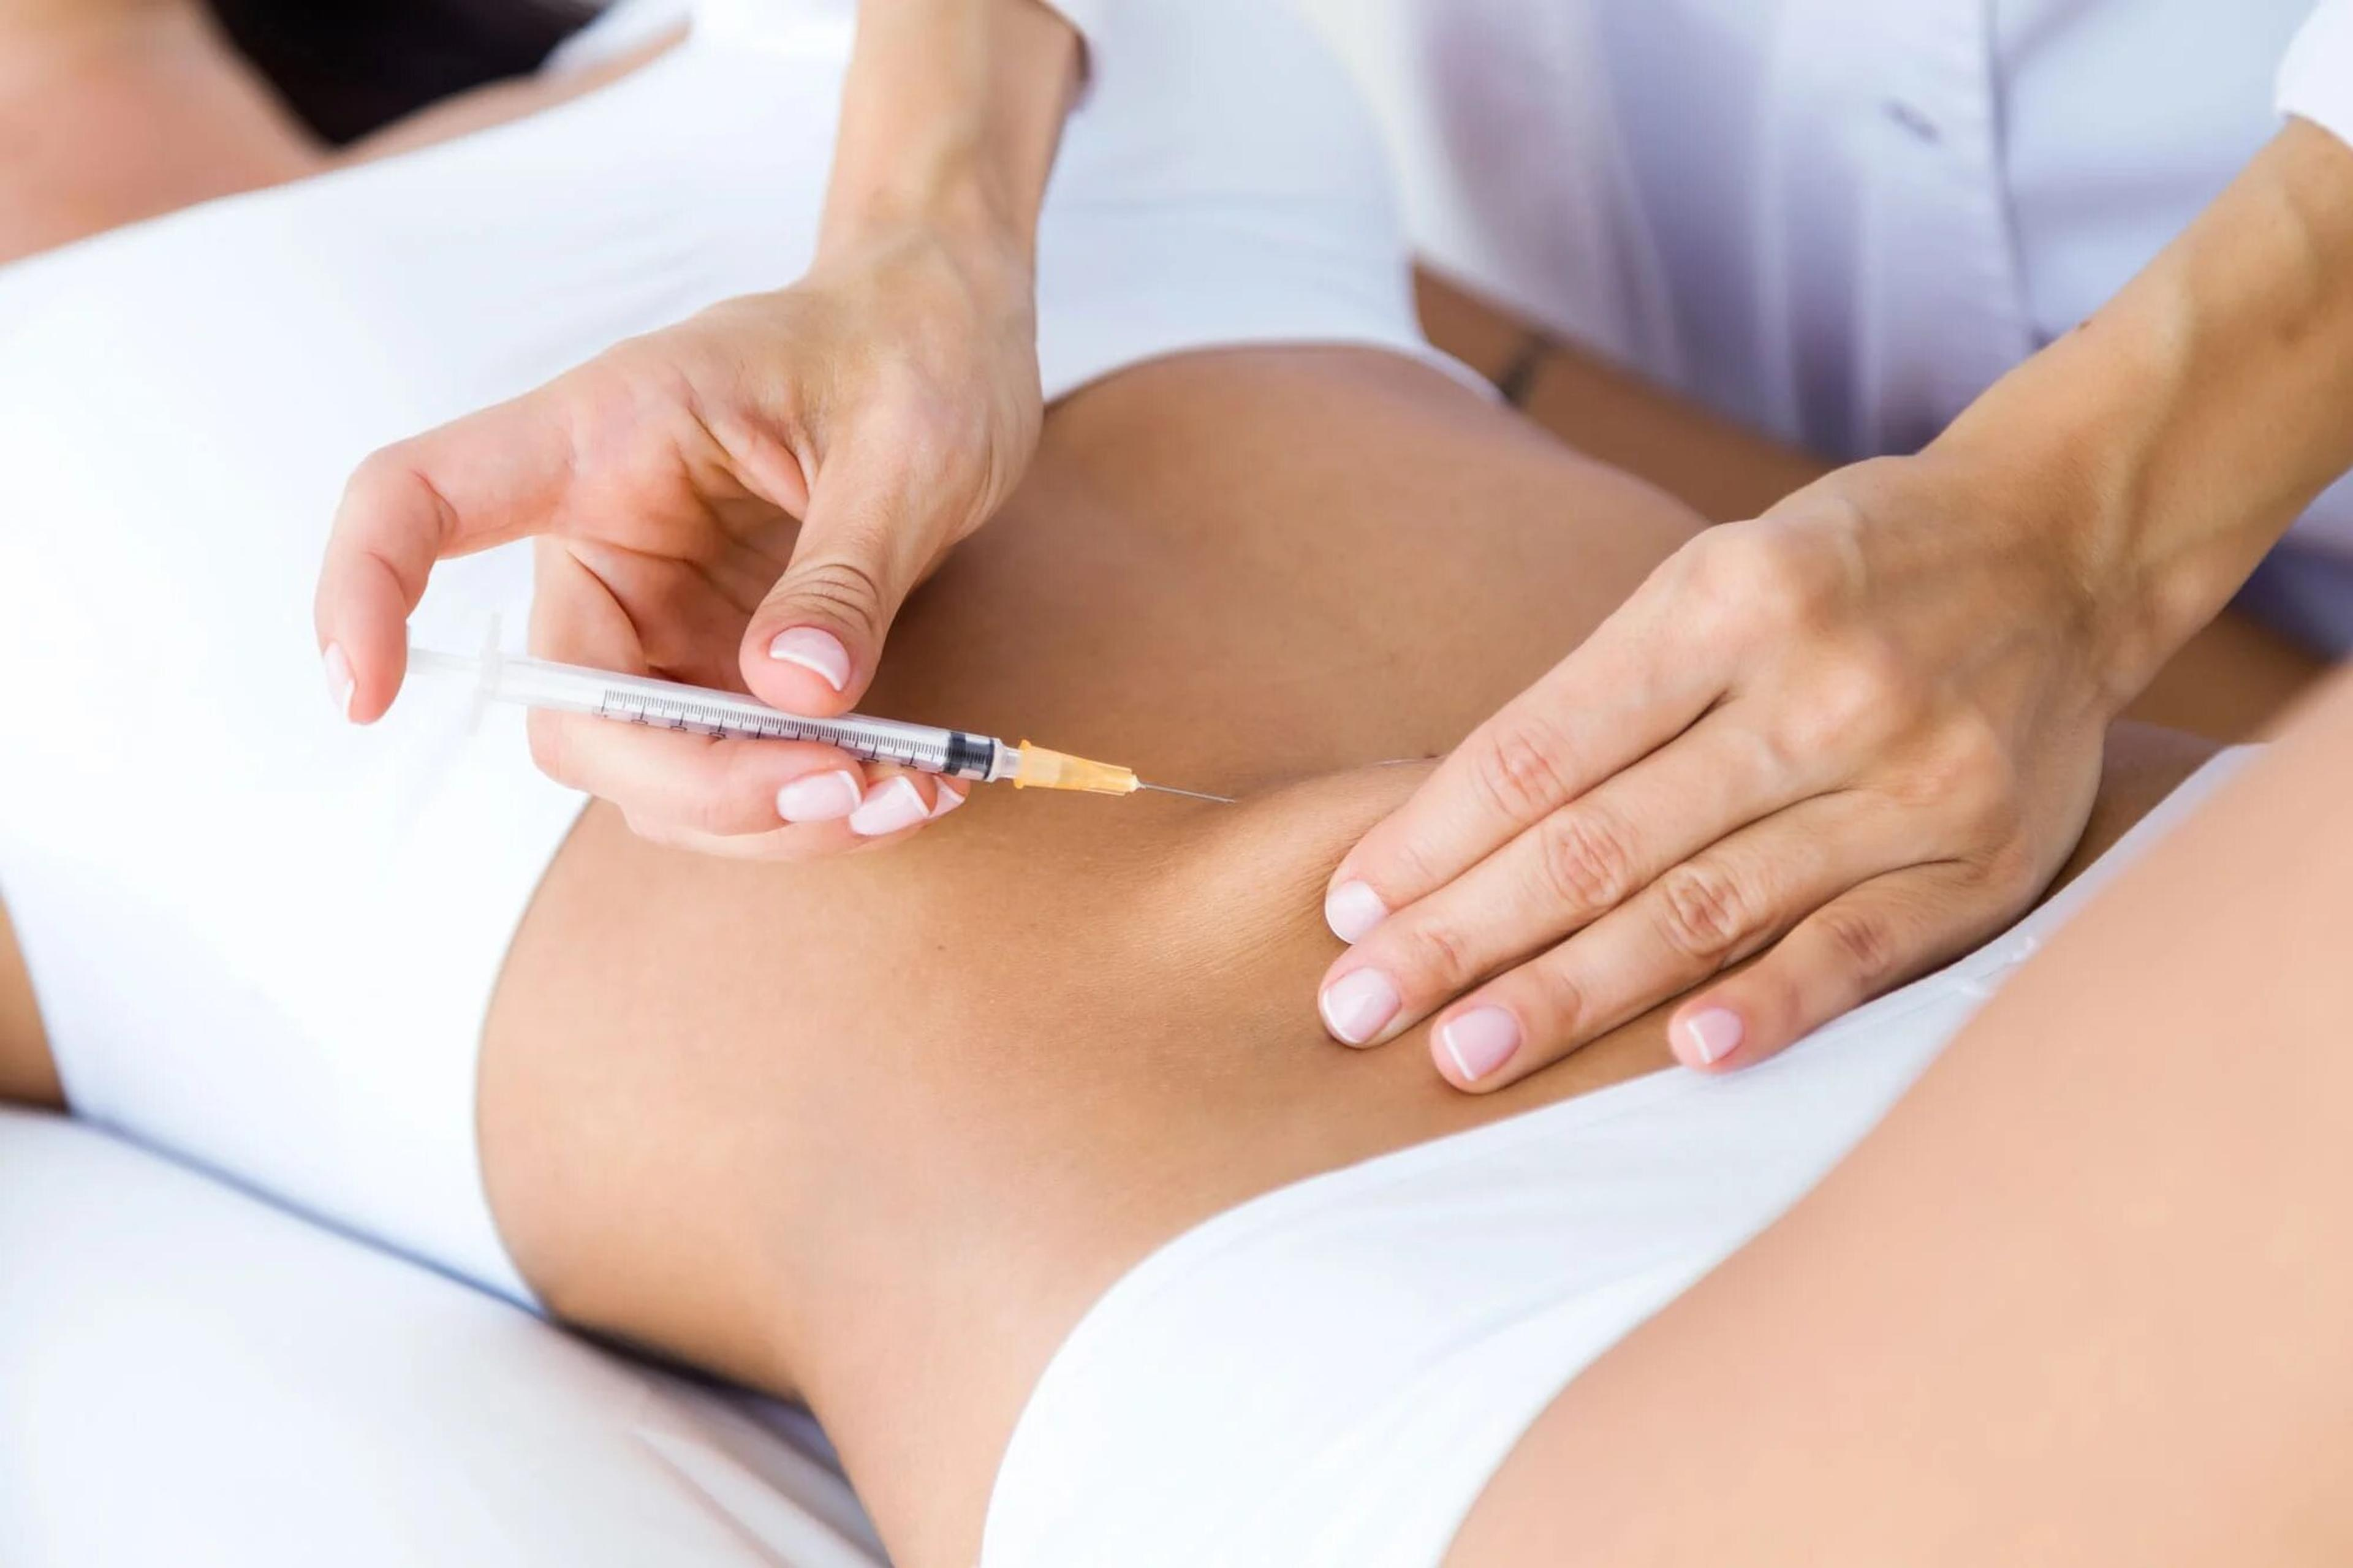 Patient receiving cosmetic injection in the abdomen